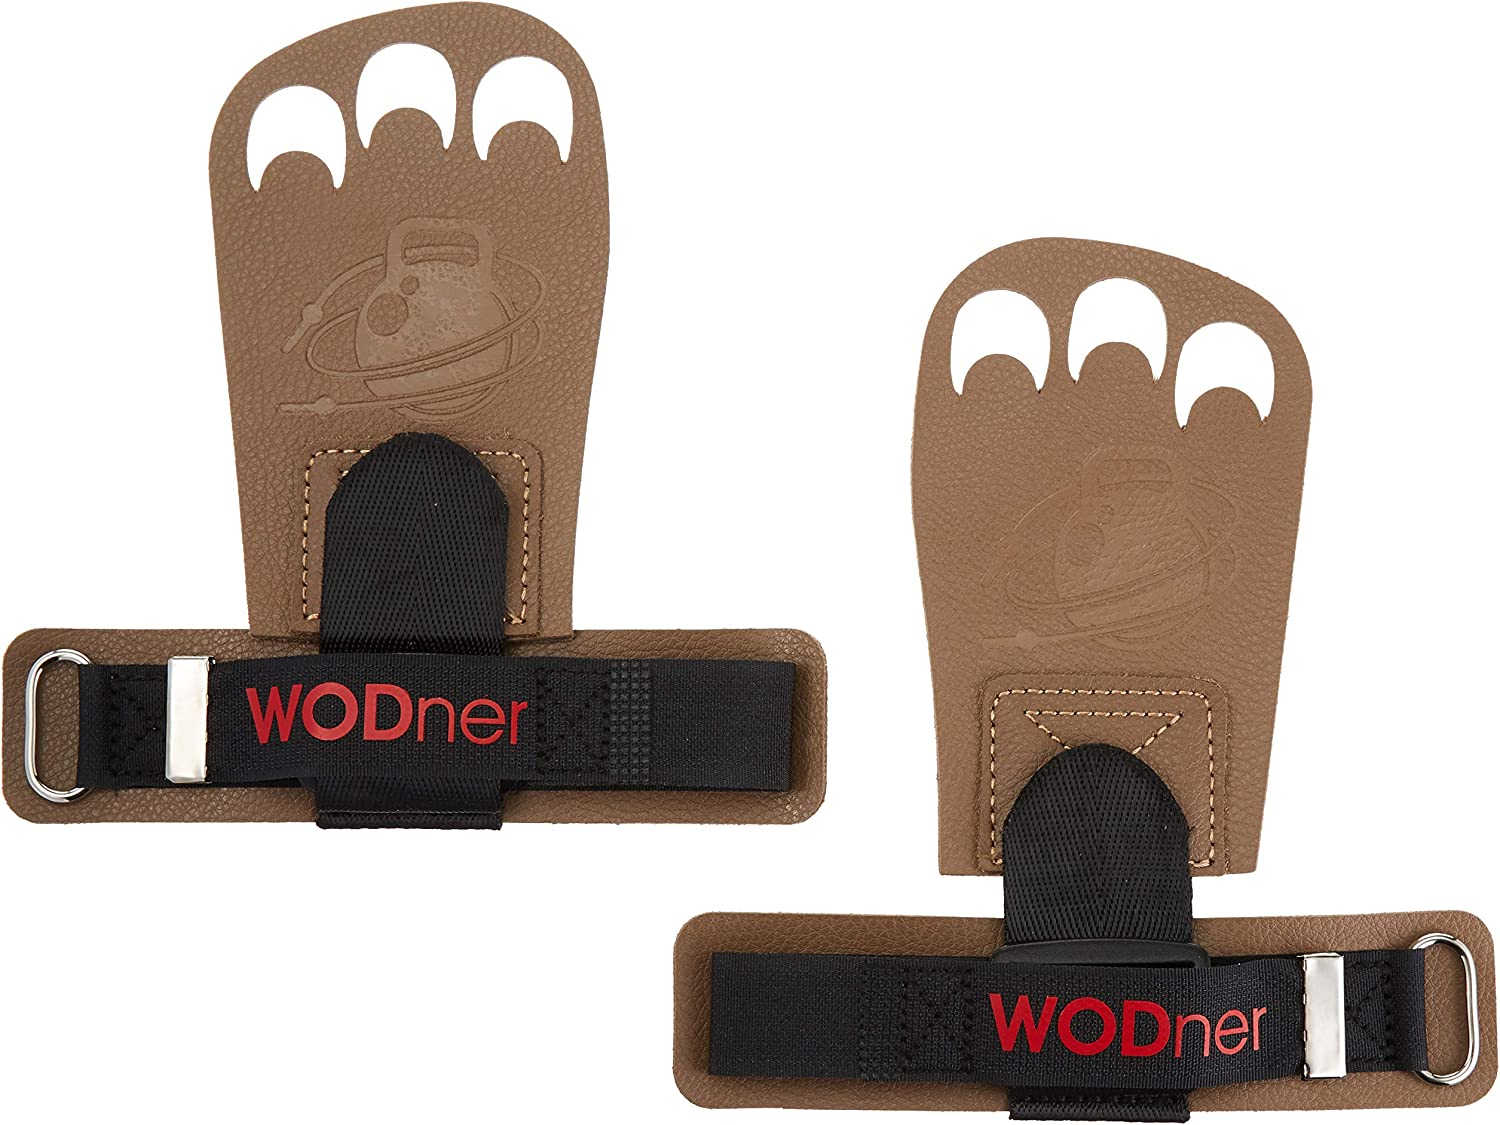 WODner One Sale Special Price Size Fits All Max 78% OFF Handsavers Premium Leather Cros Grips